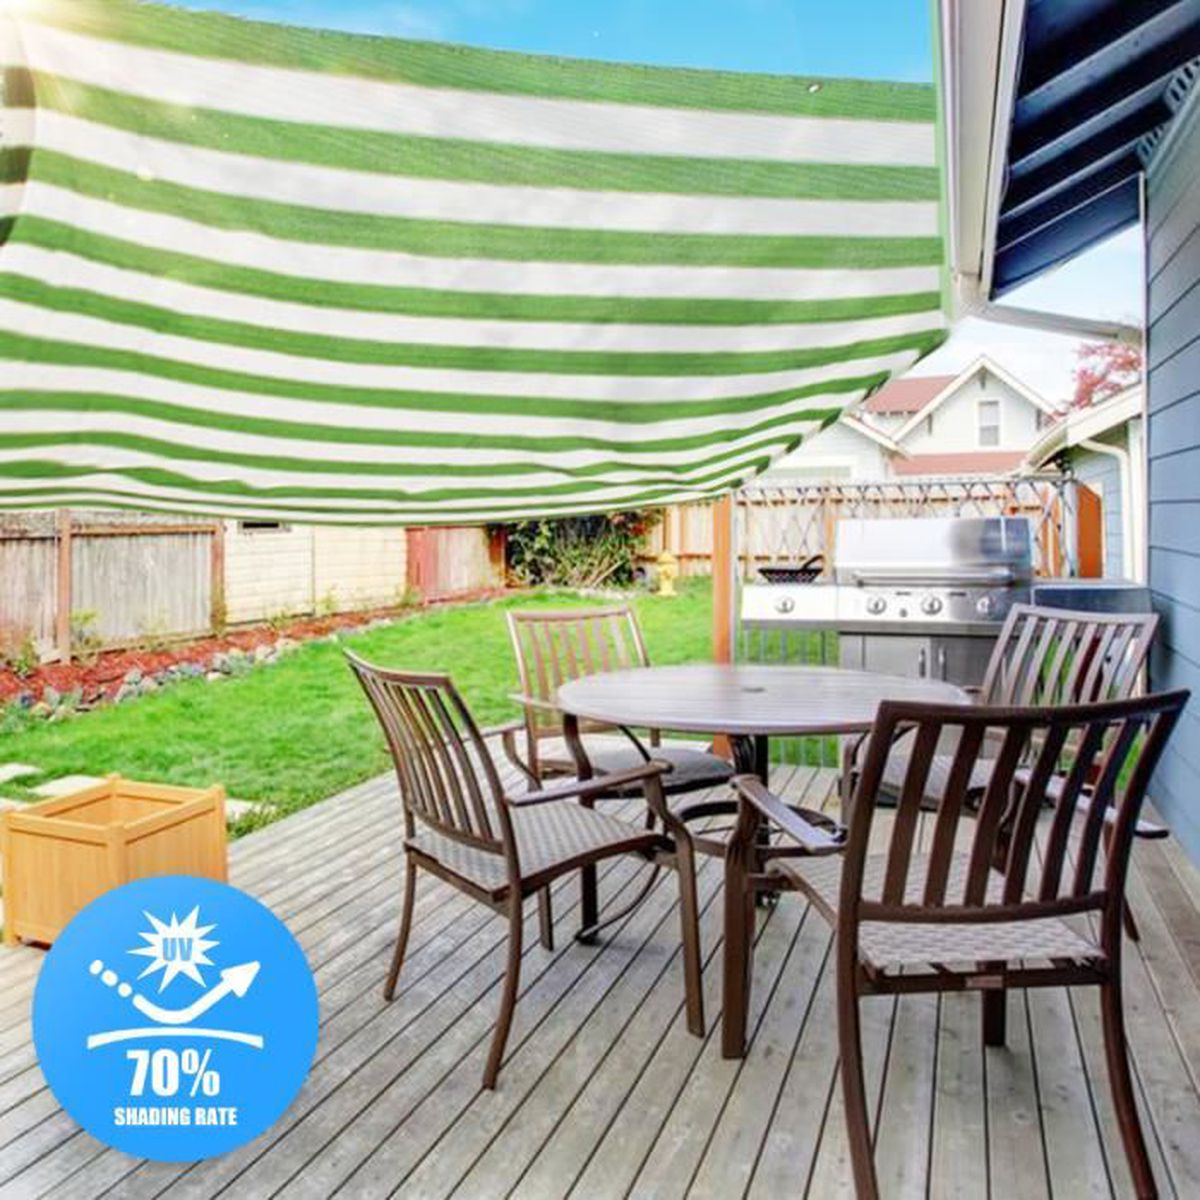 Voile D Ombrage Grand Vent toptw 2x2m voile d'ombrage solaire jardin anti soleil